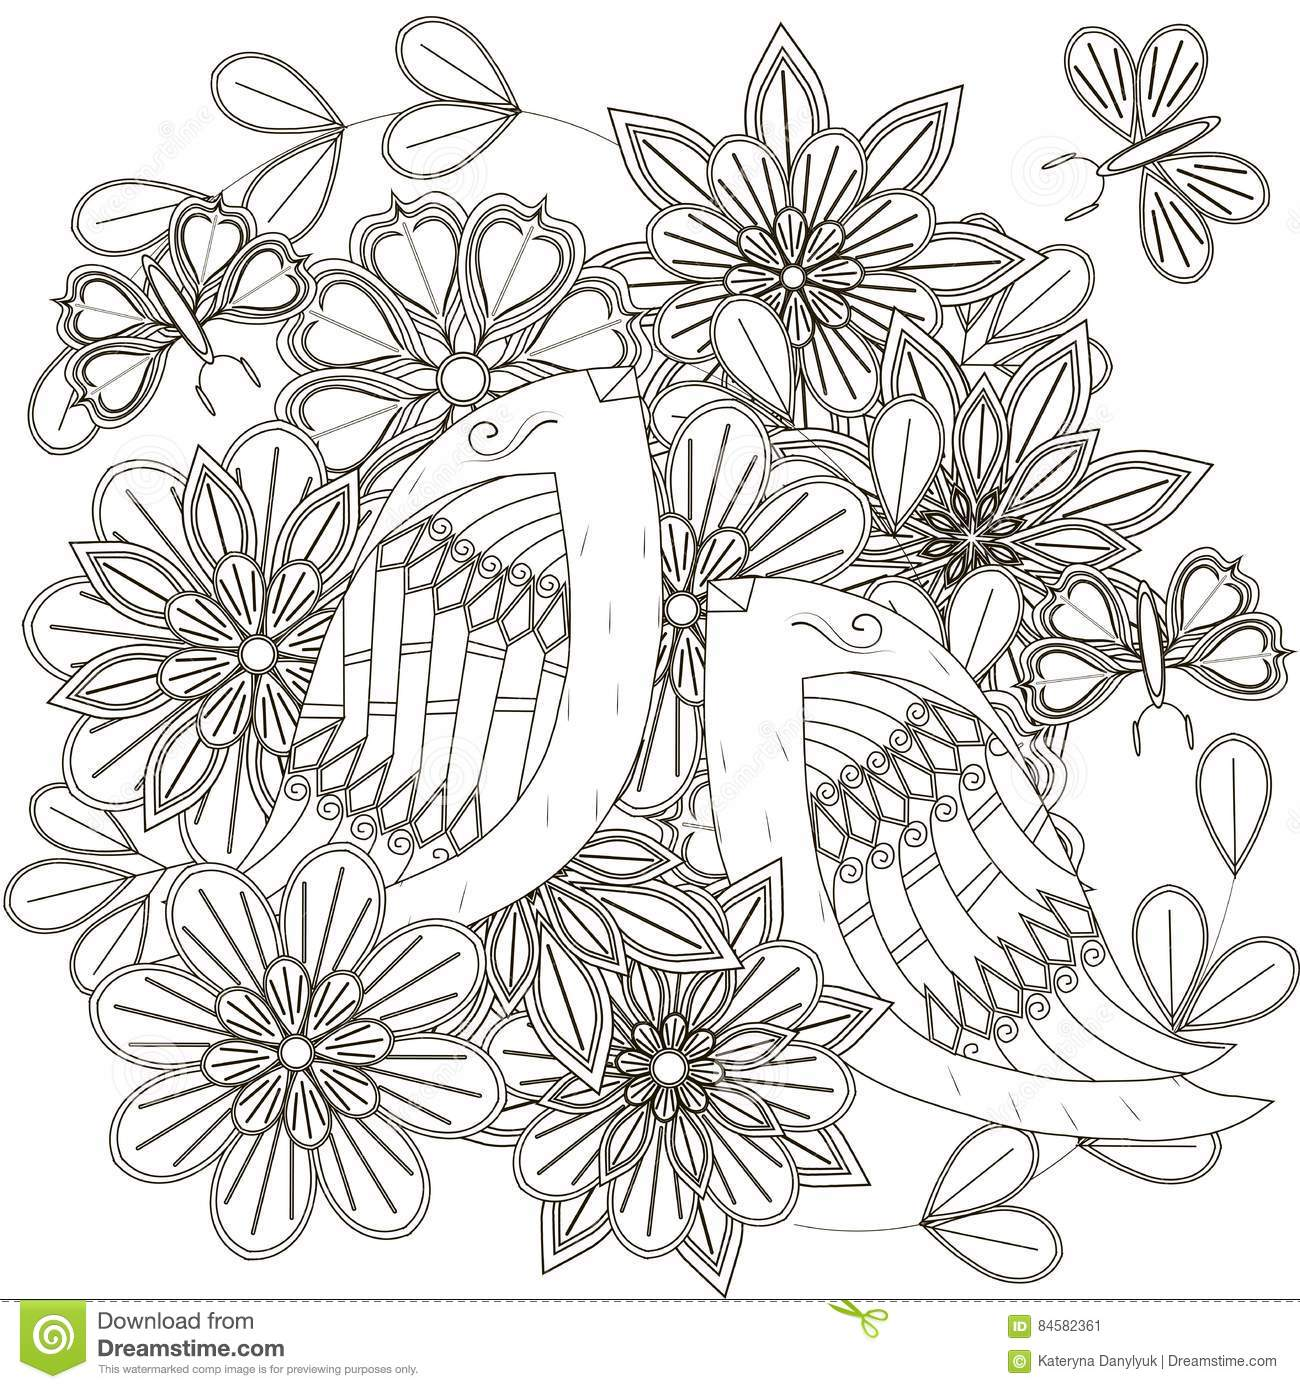 Black And White Sketch Of Bouquet With Birds, Stylized